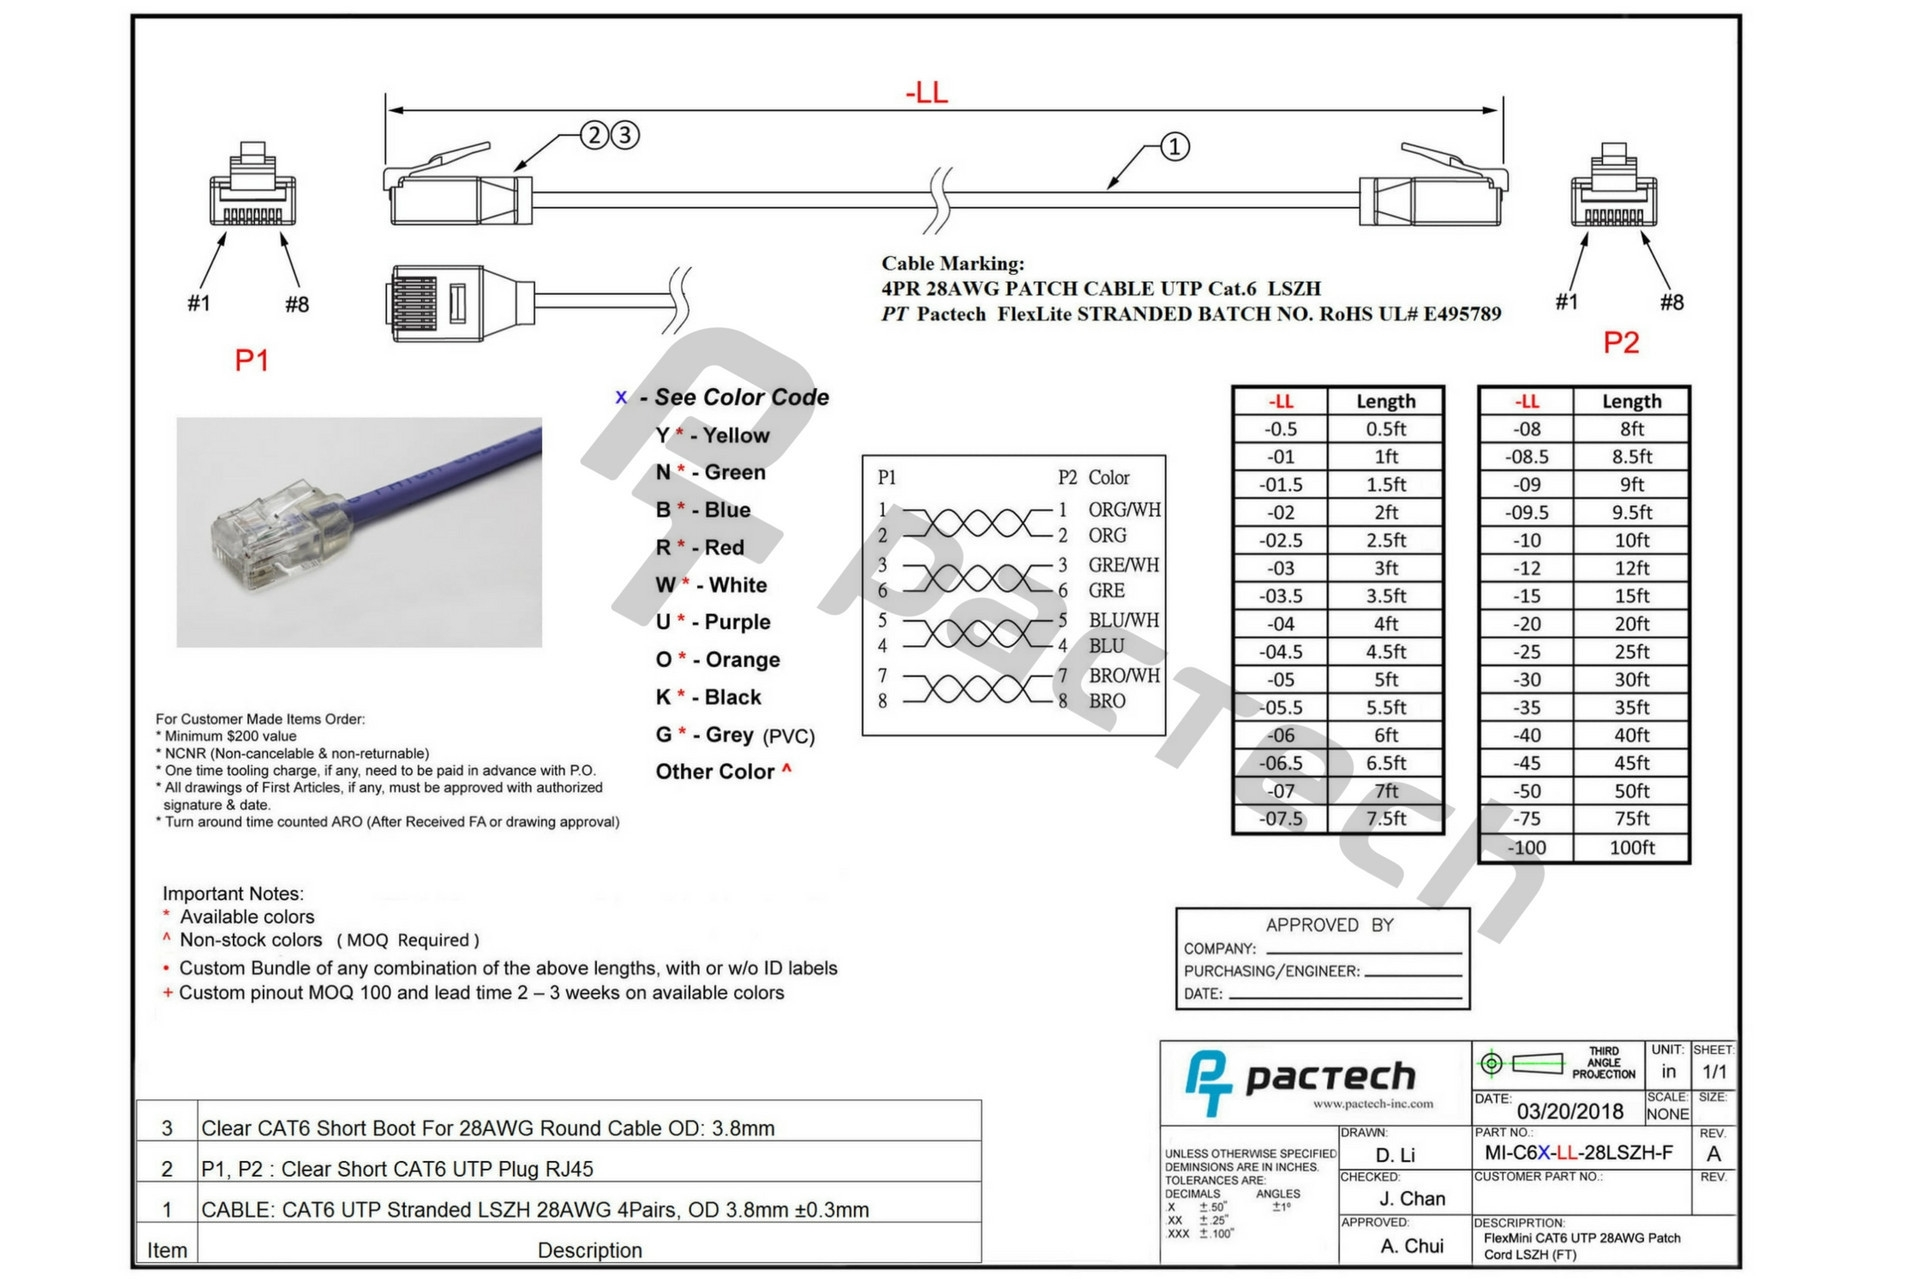 For The Cat5 Cable Rj45 Jack Wiring Diagram Free Download ... Cat Wiring Diagram Australia on cat 5 wall jack diagram, cat 5 a vs b, speaker wire diagram, cat 5 installation, cat 5 cable diagram, cat 5 generator, cat 5 specifications, cat 5 troubleshooting, cat 5 wall plate, cat 5 vs cat 6, ceiling fan installation diagram, cat 5 pin configuration, cat 5e vs cat 5, cat 6 jack wiring, cat 6 diagram, cat wiring standards, cat 5 connectors diagram, cat 5 distributor, cat 5 splitter, cat color by number coloring pages,